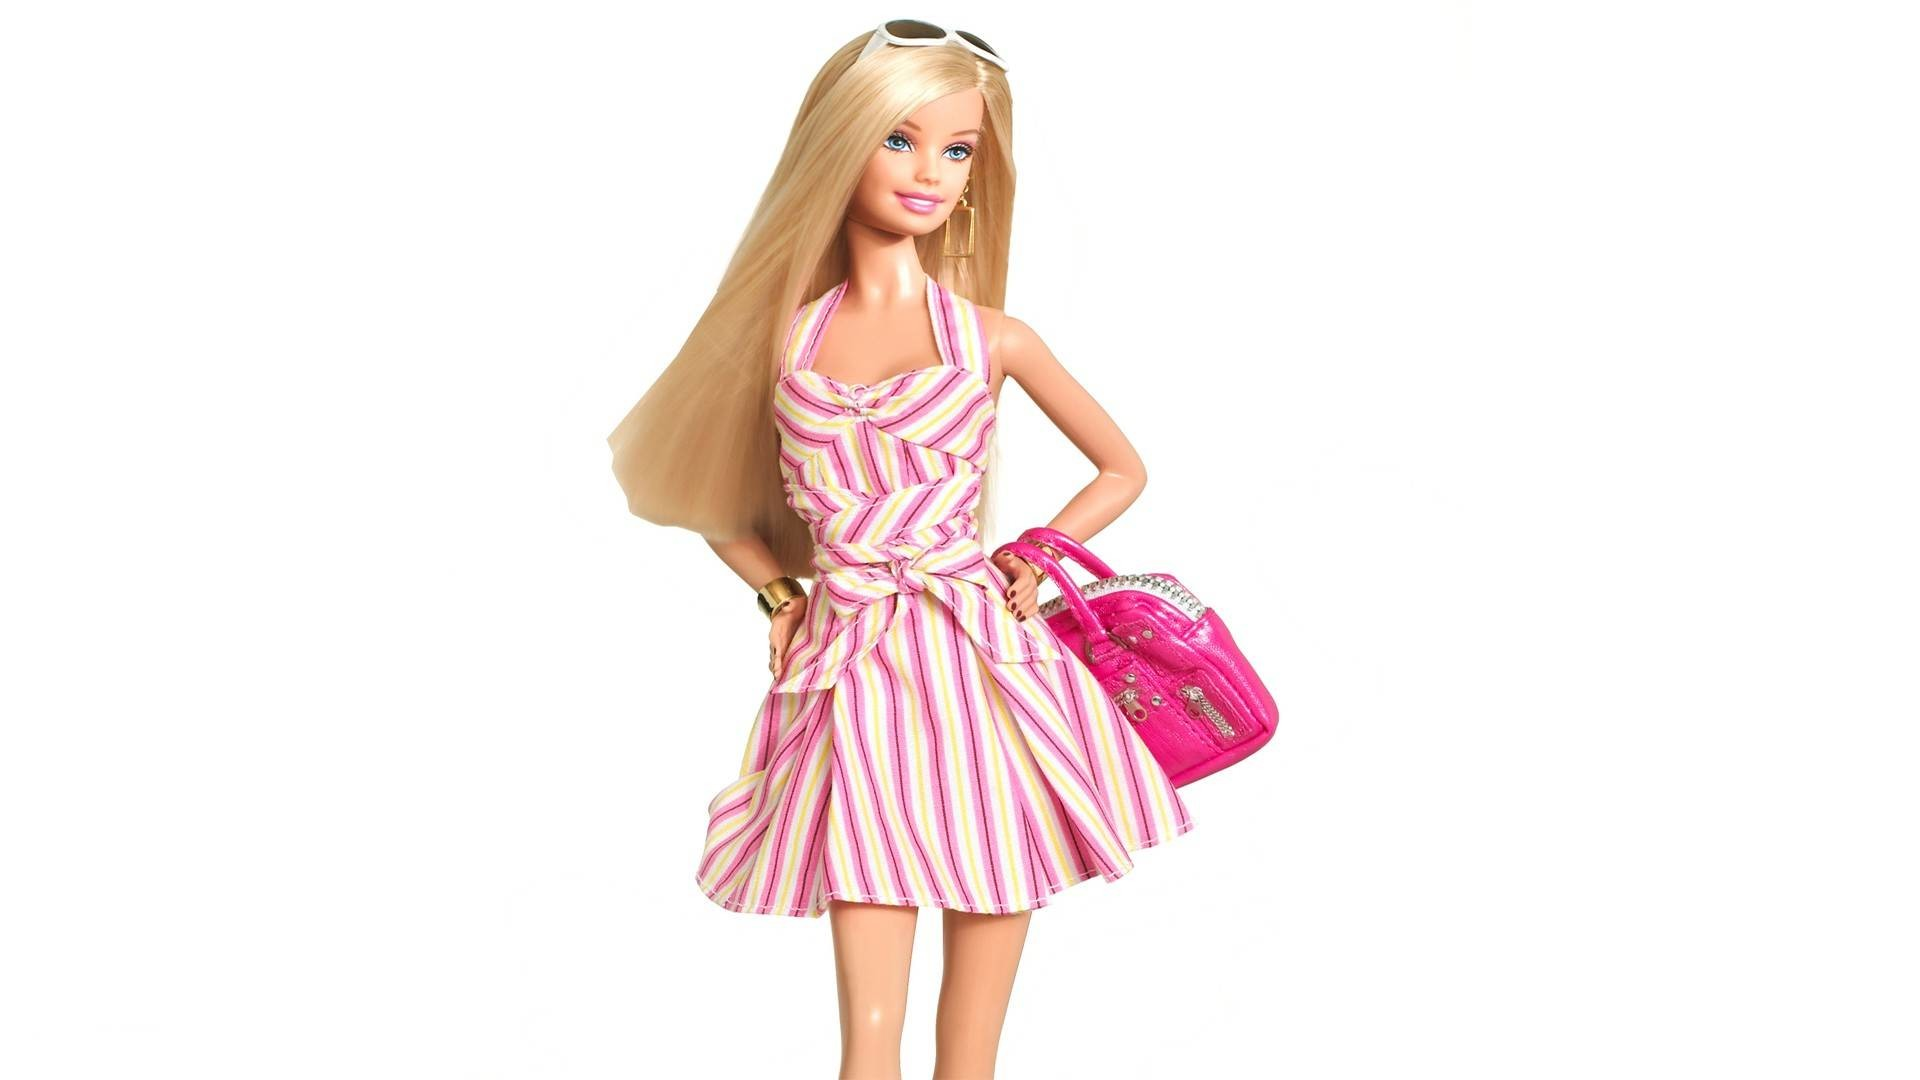 Beautiful Barbie Doll HD Wallpapers Free Download Best Photos | HD  Wallpapers | Pinterest | Barbie doll, Barbie and Hd wallpaper